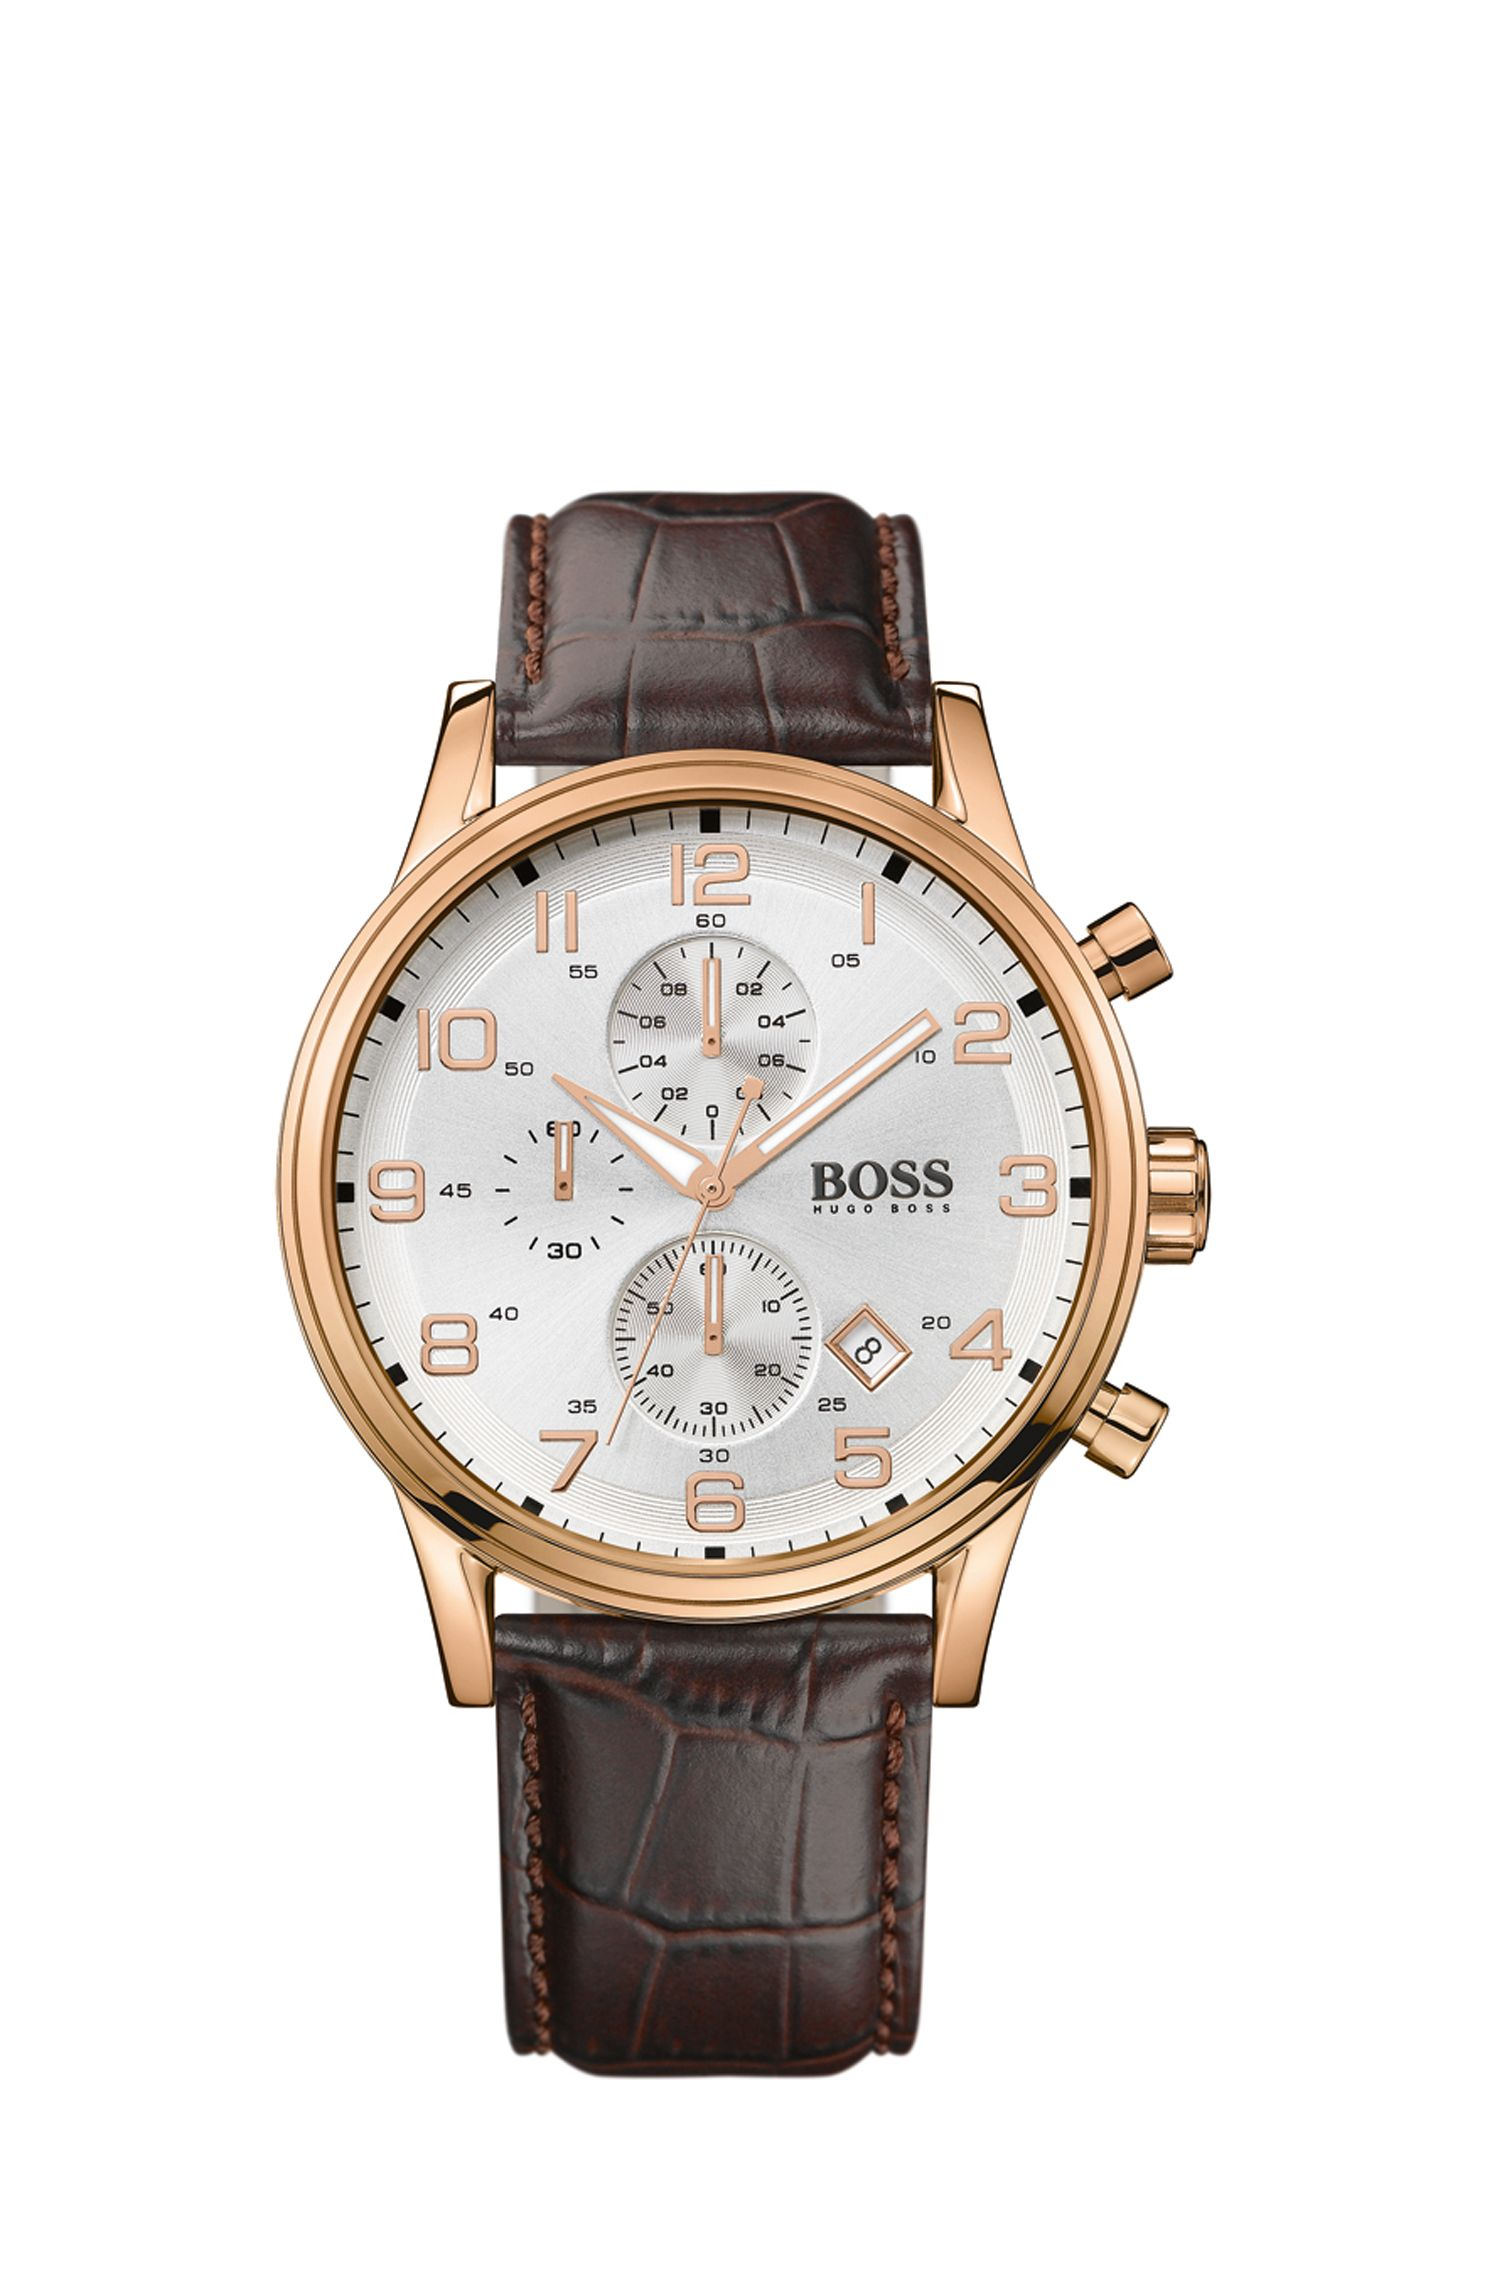 Three-hand chronograph watch in gold-plated stainless steel